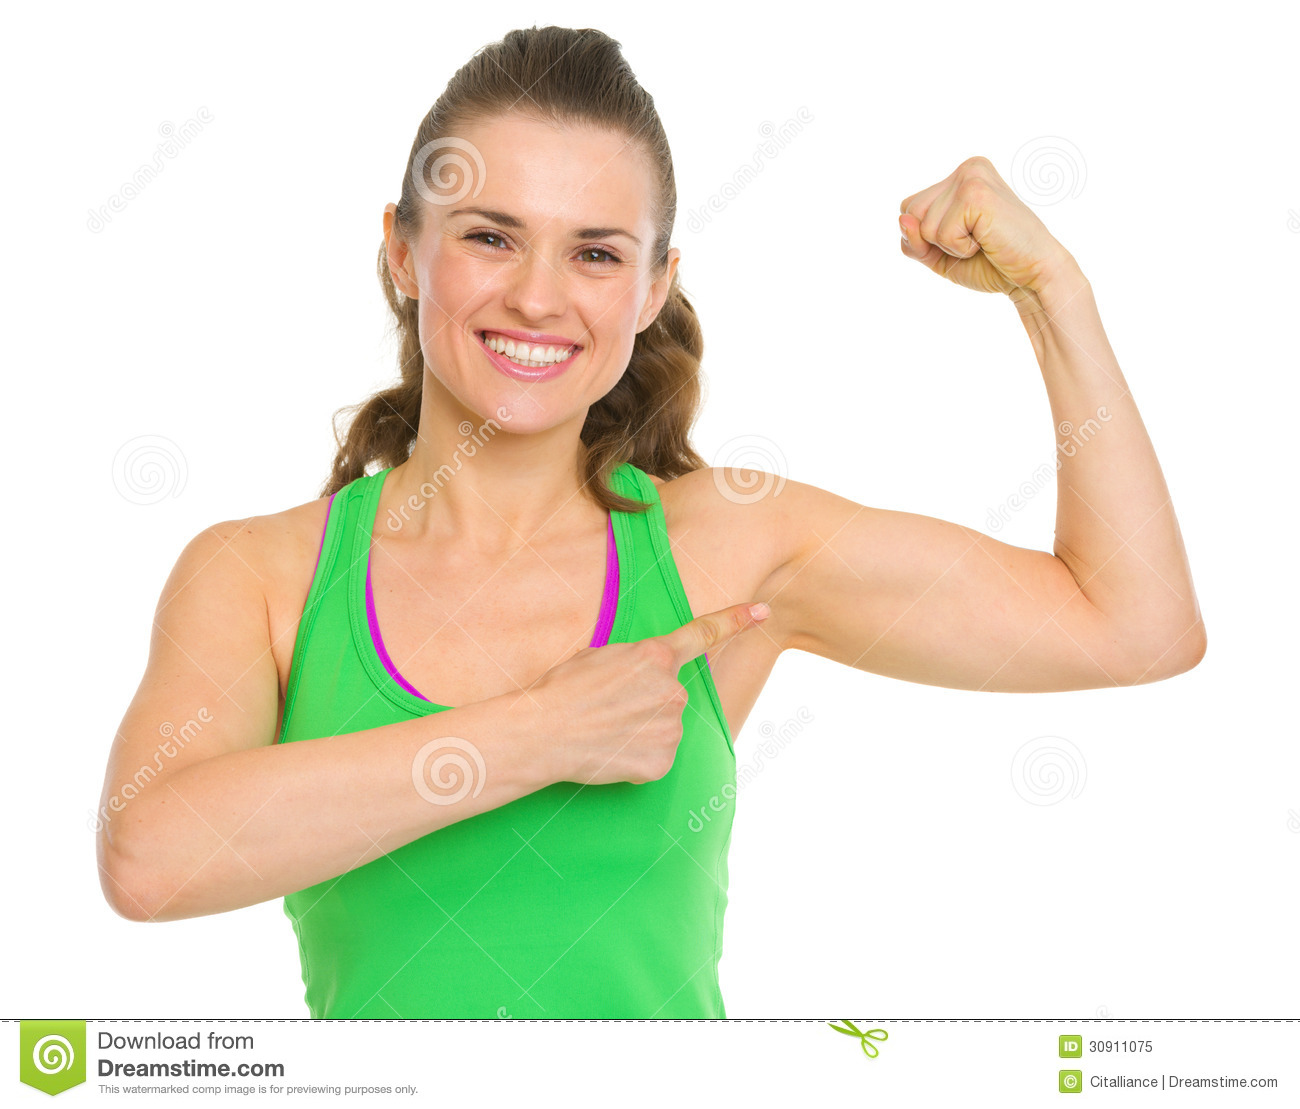 happy-fitness-young-woman-pointing-biceps-isolated-white-30911075.jpg